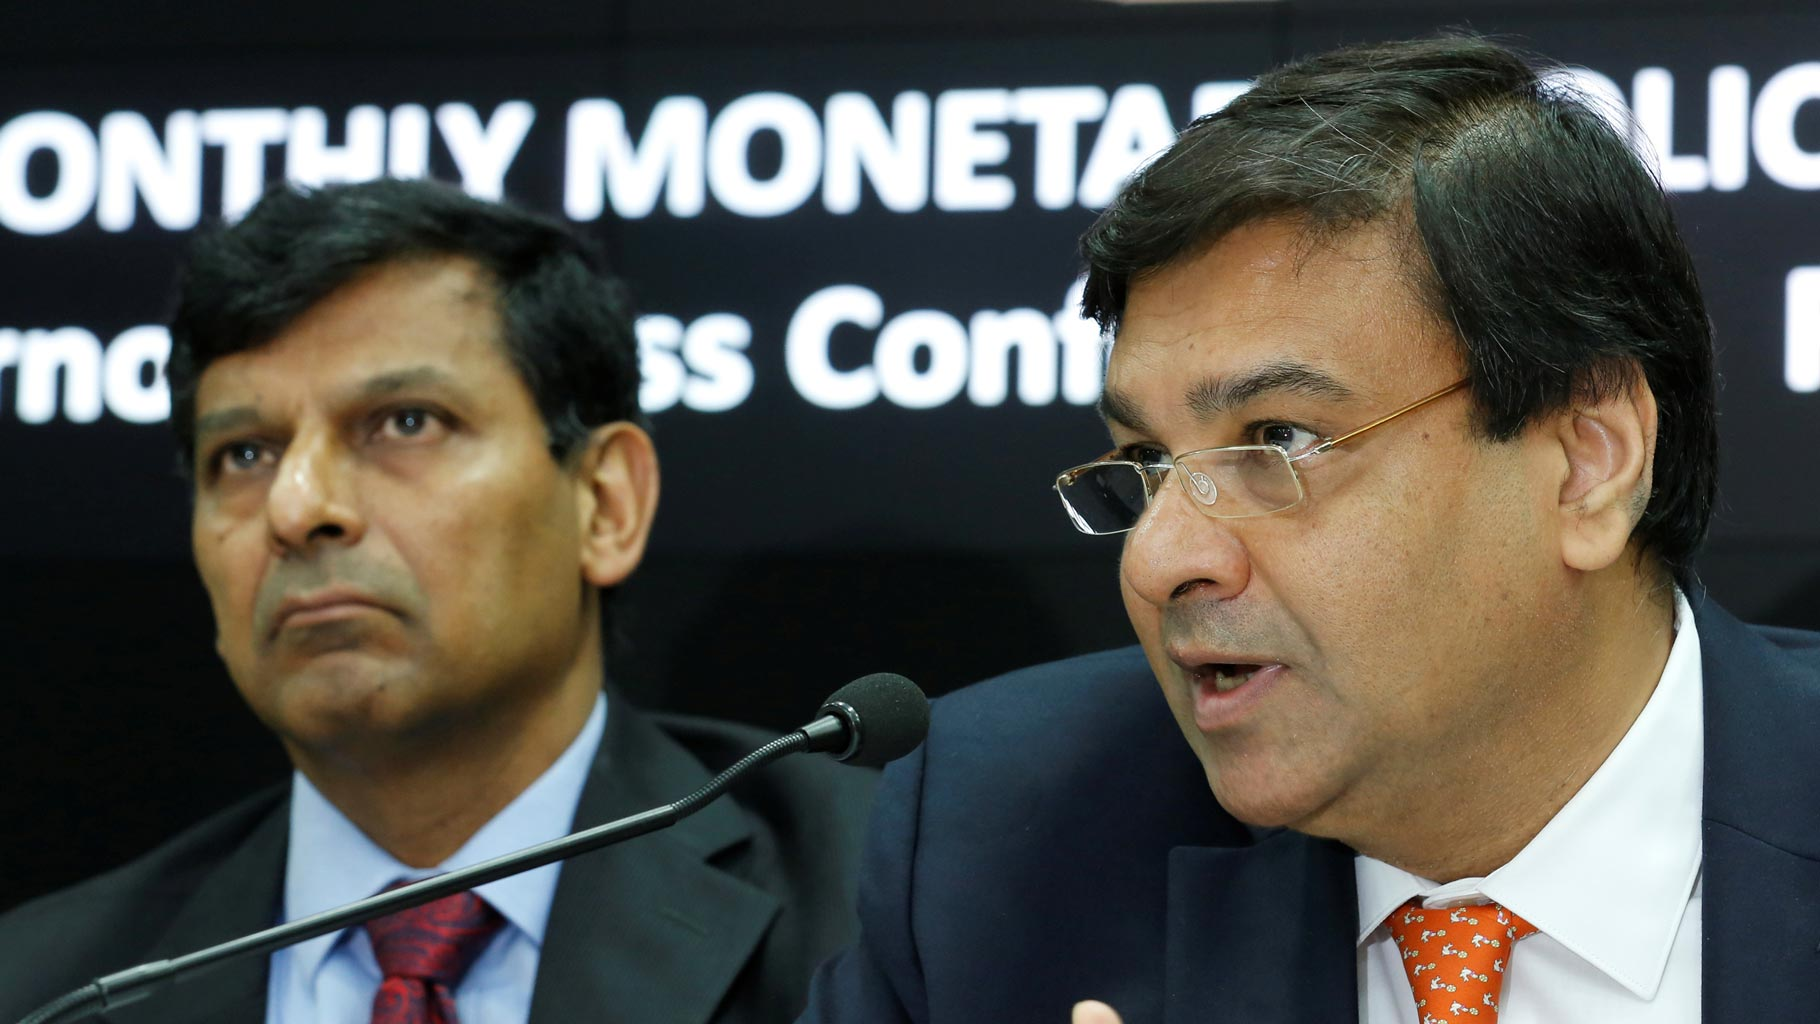 Former RBI governor Raghuram Rajan and current RBI governor Urjit Patel. Credit: Reuters